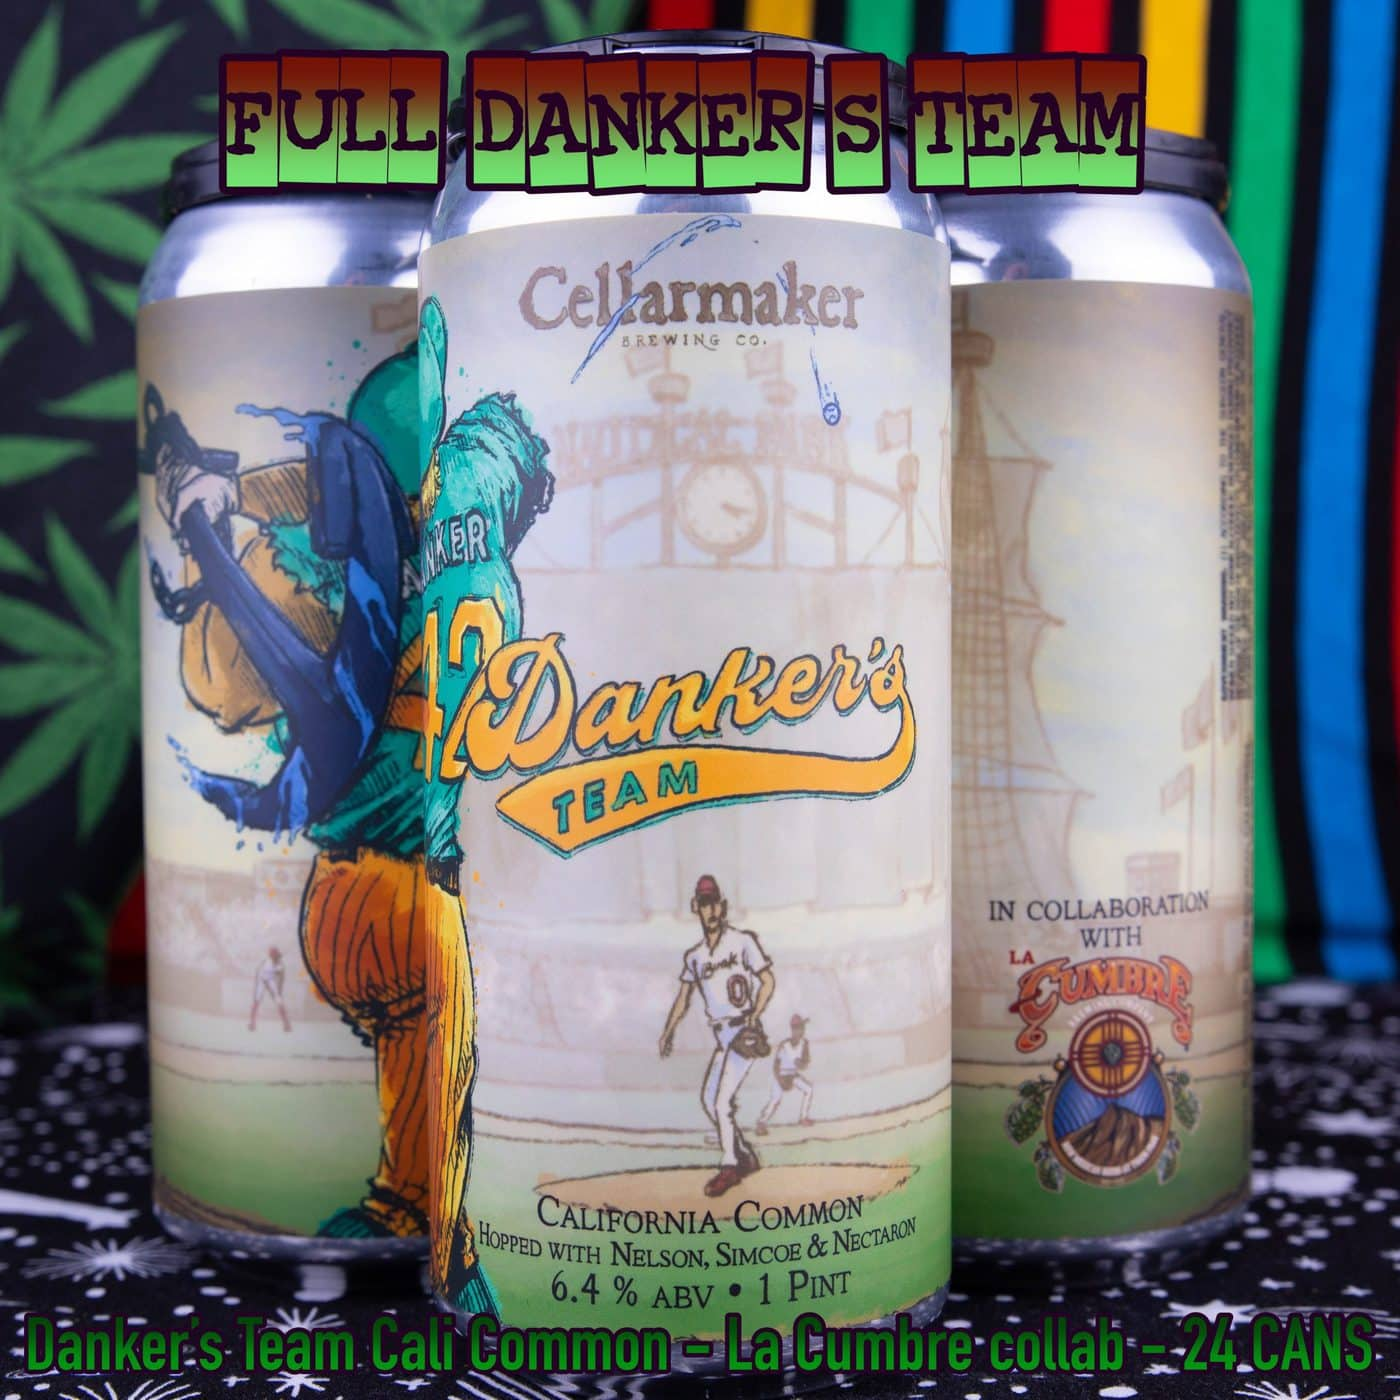 FULL CASE 24 CANS Danker's Team Cali Common – La Cumbre Collab – Shipping Out Tuesday 4/13 For Next Day Delivery*